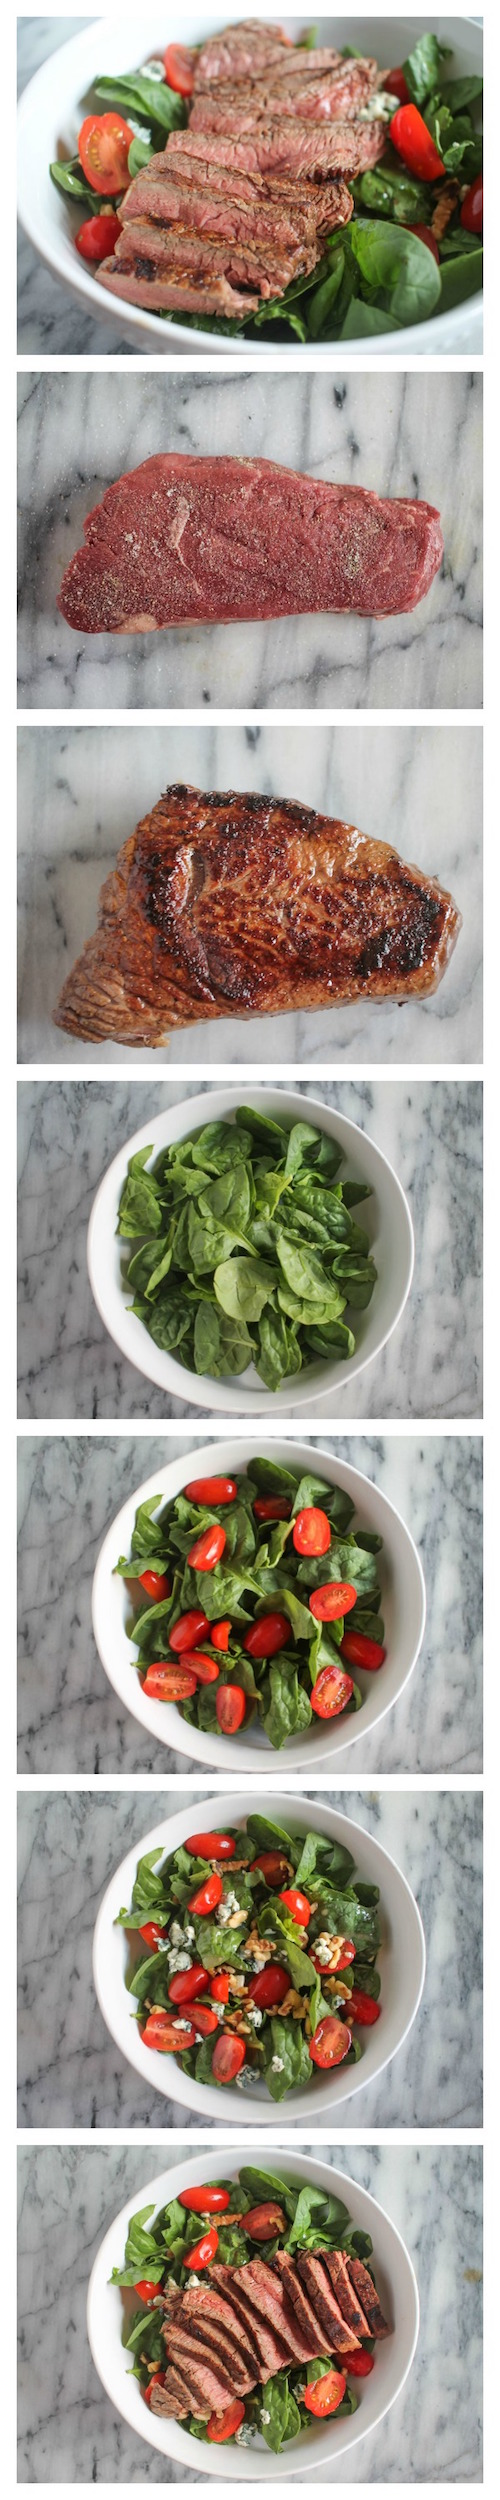 Sirloin Steak Salad Collage